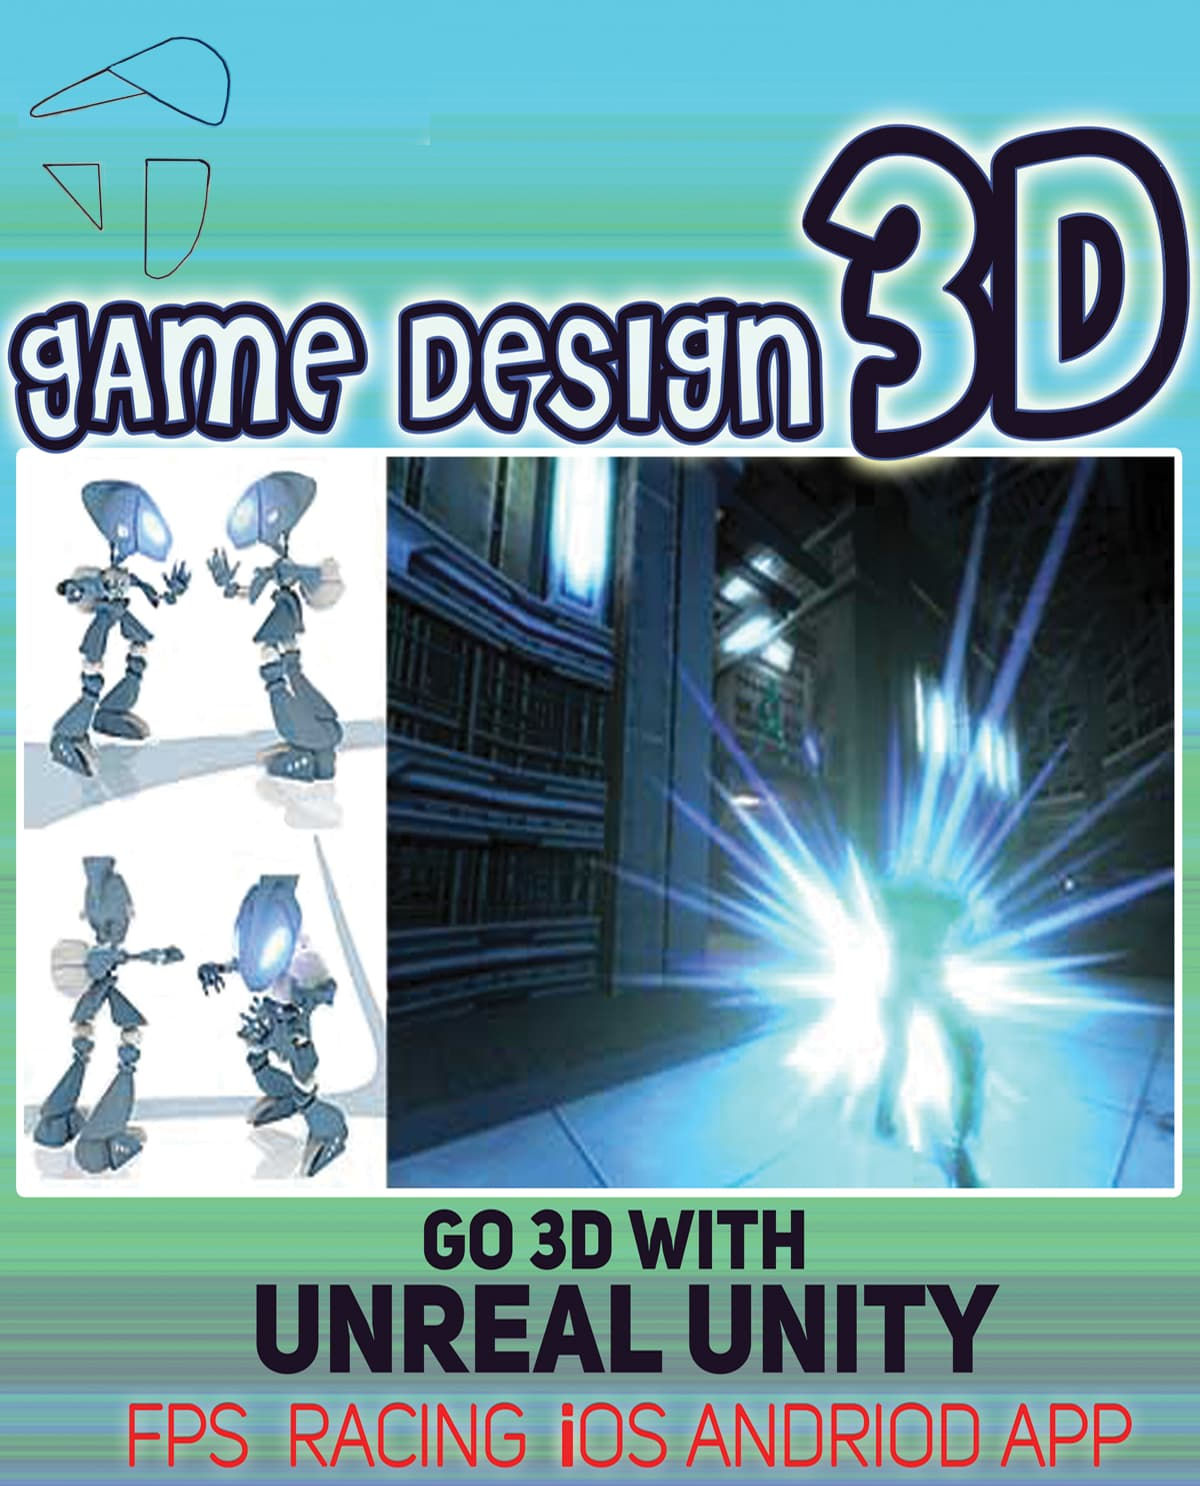 Game Design 3D FPS